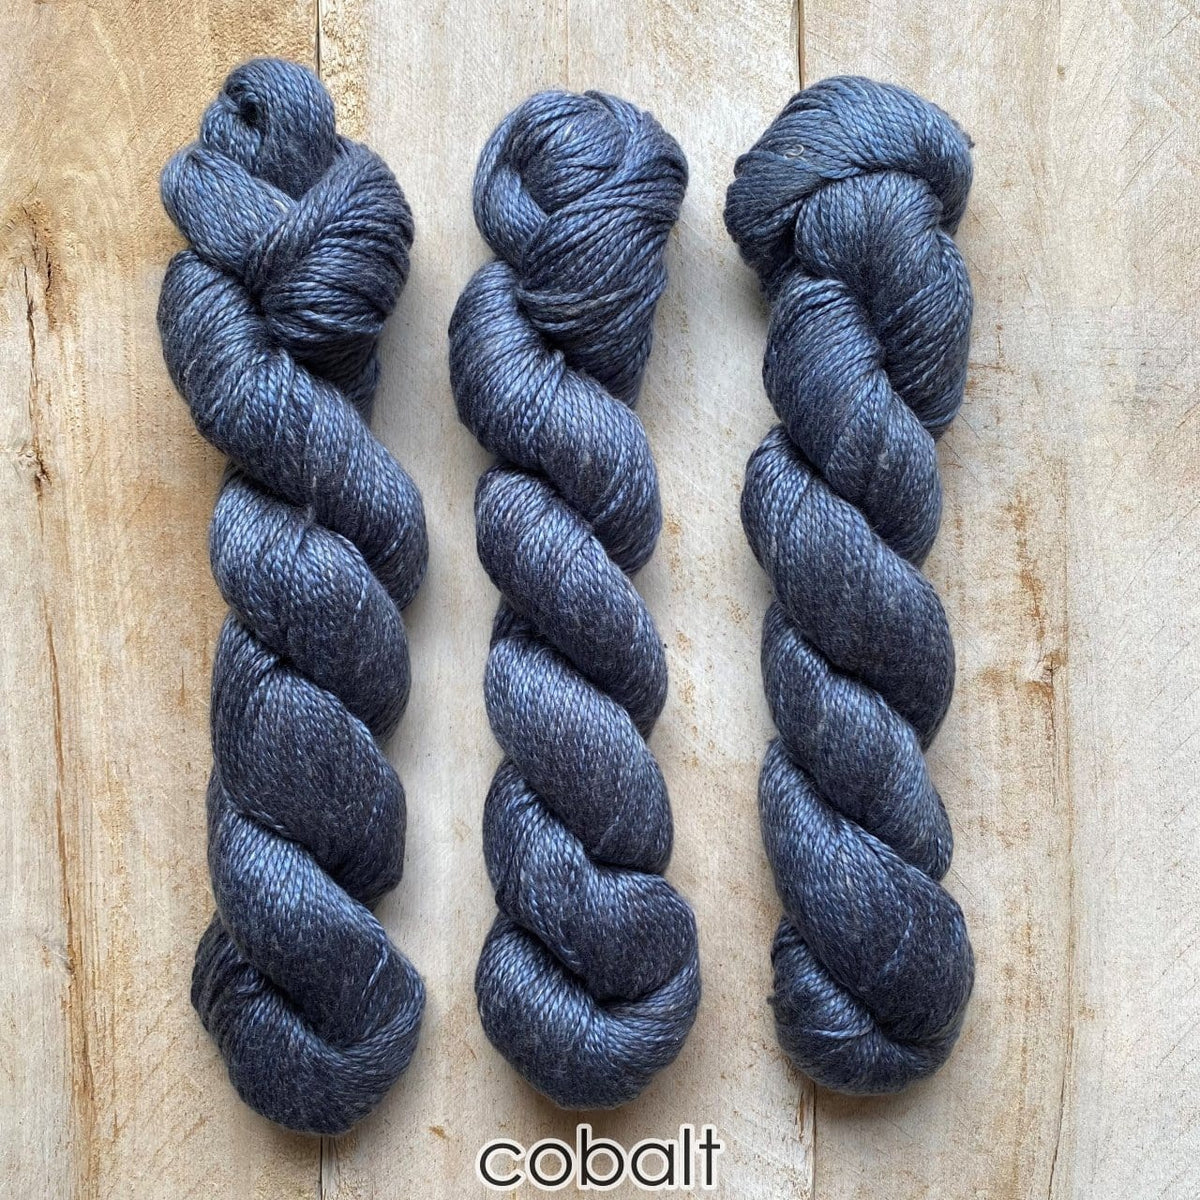 BELLE BRUME by Louise Robert Design | ALGUA MARINA hand-dyed semi-solid yarn